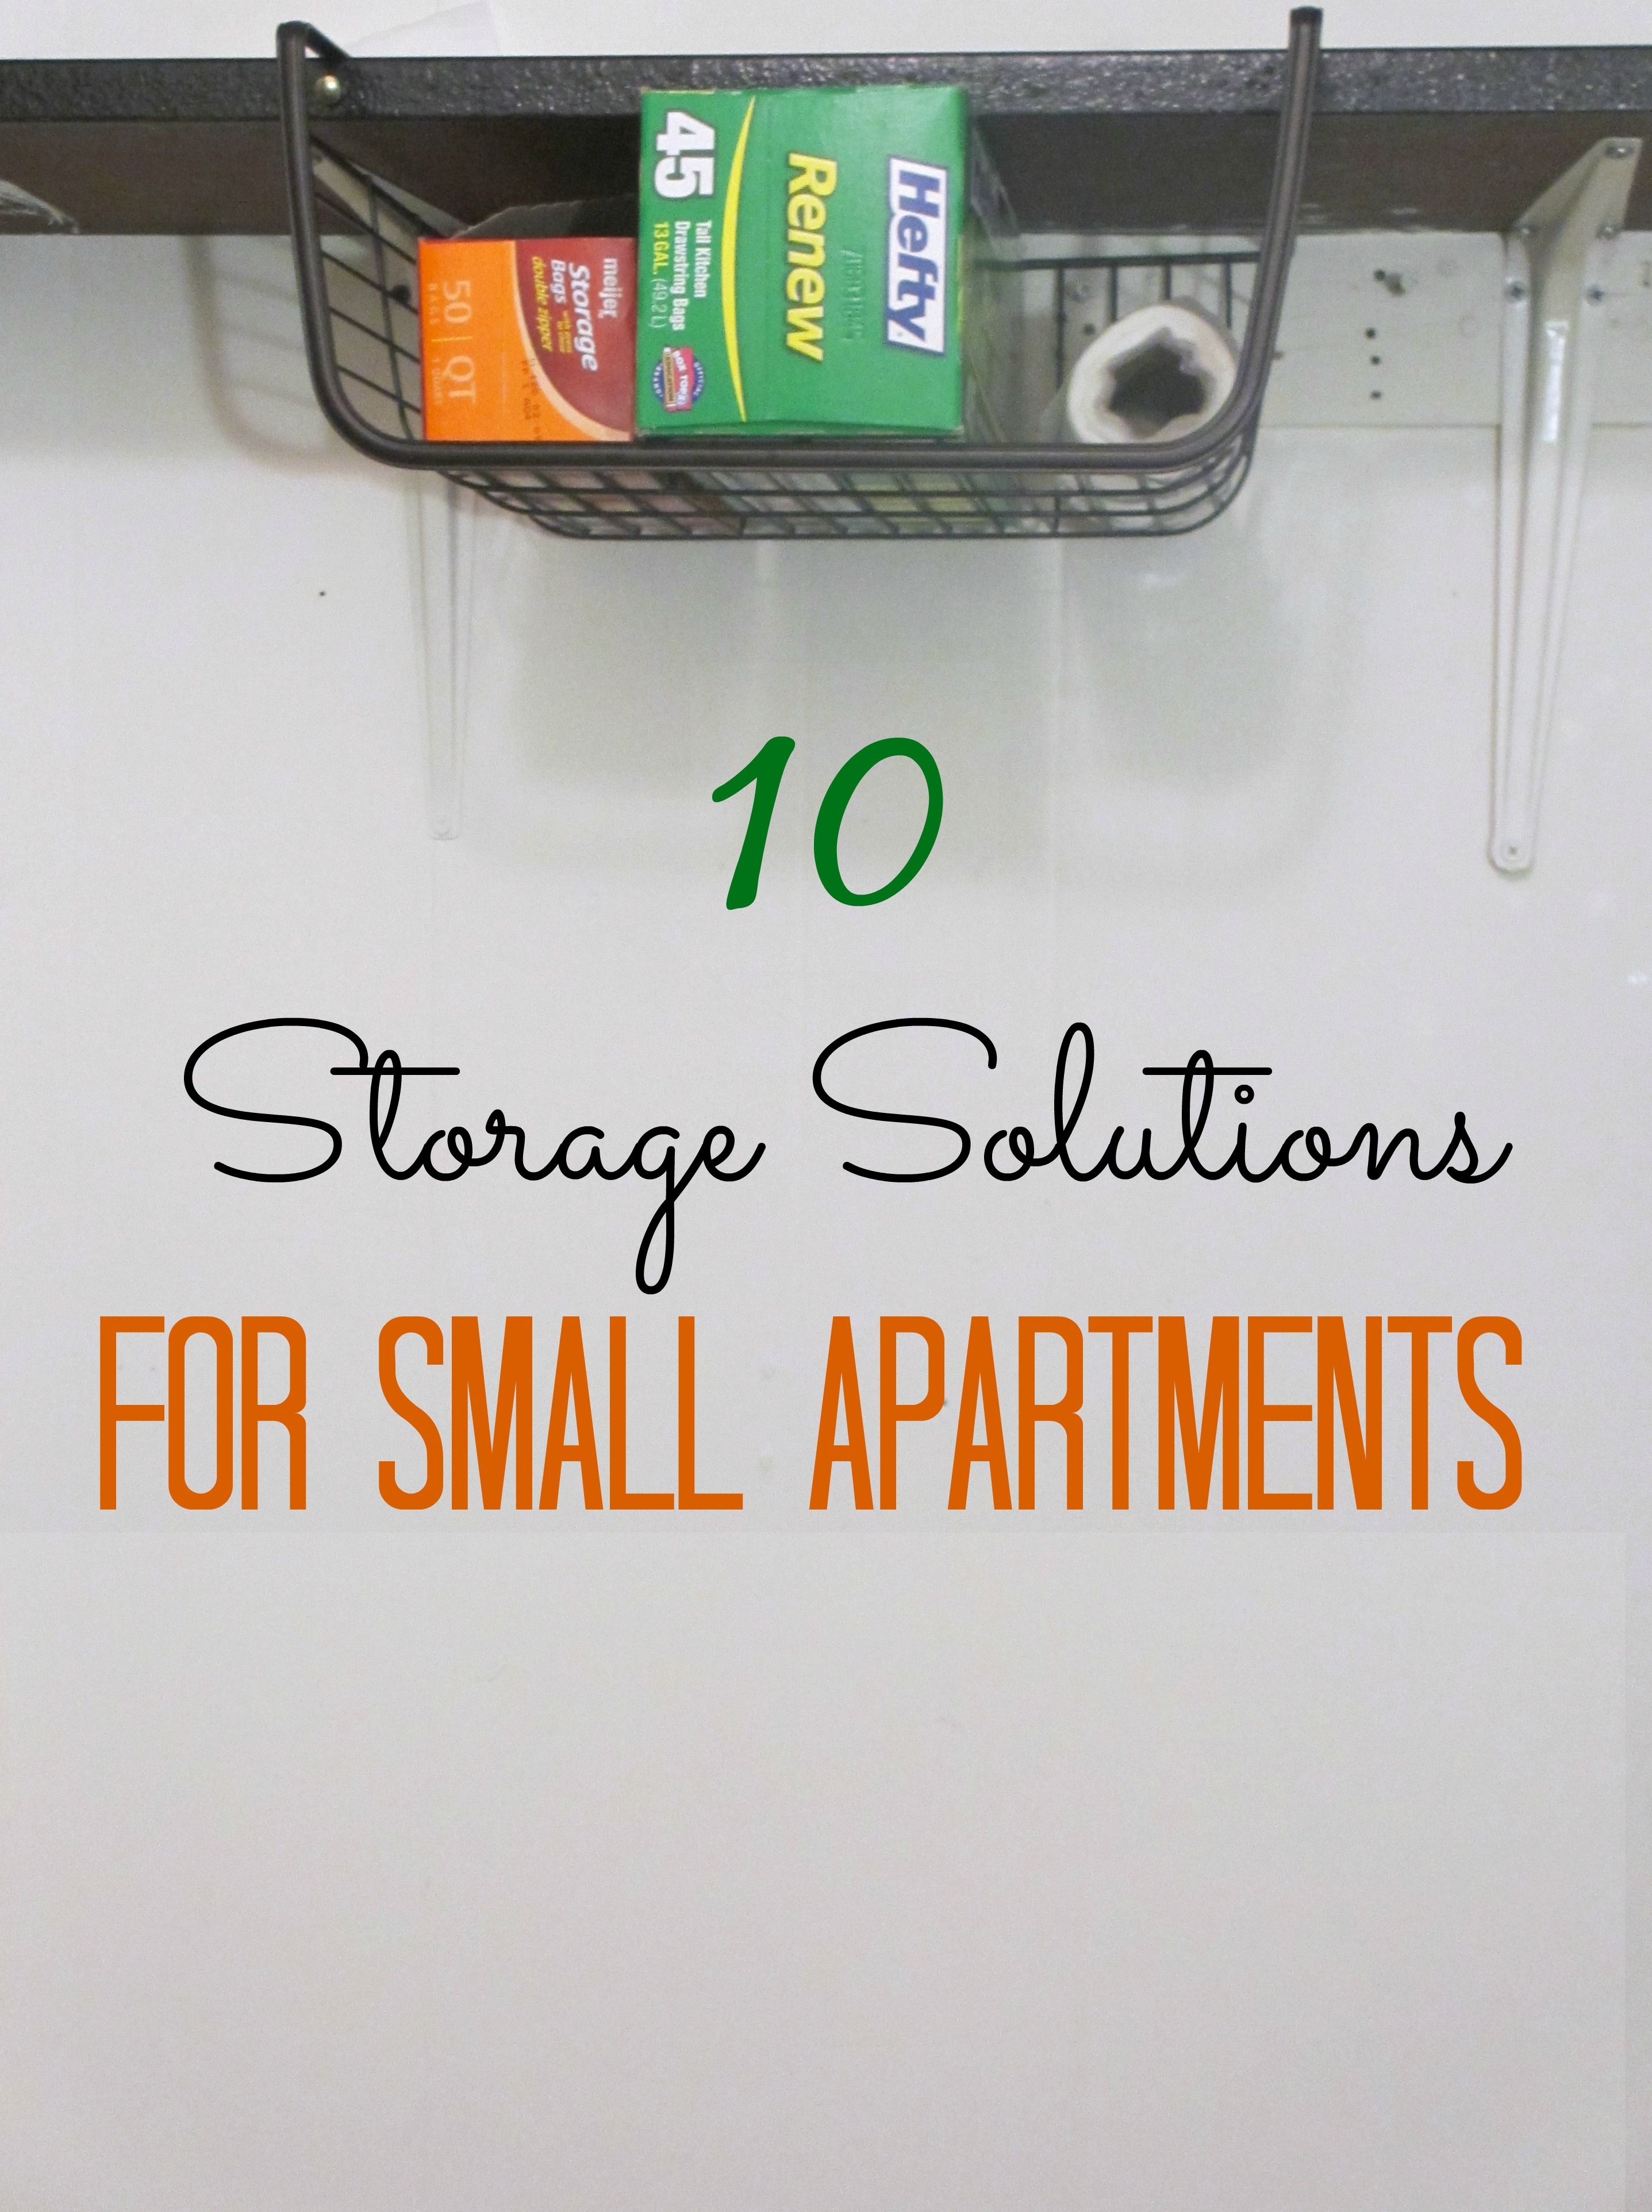 10 Storage Solutions For Small Apartments | Pinterest | Small flats ...